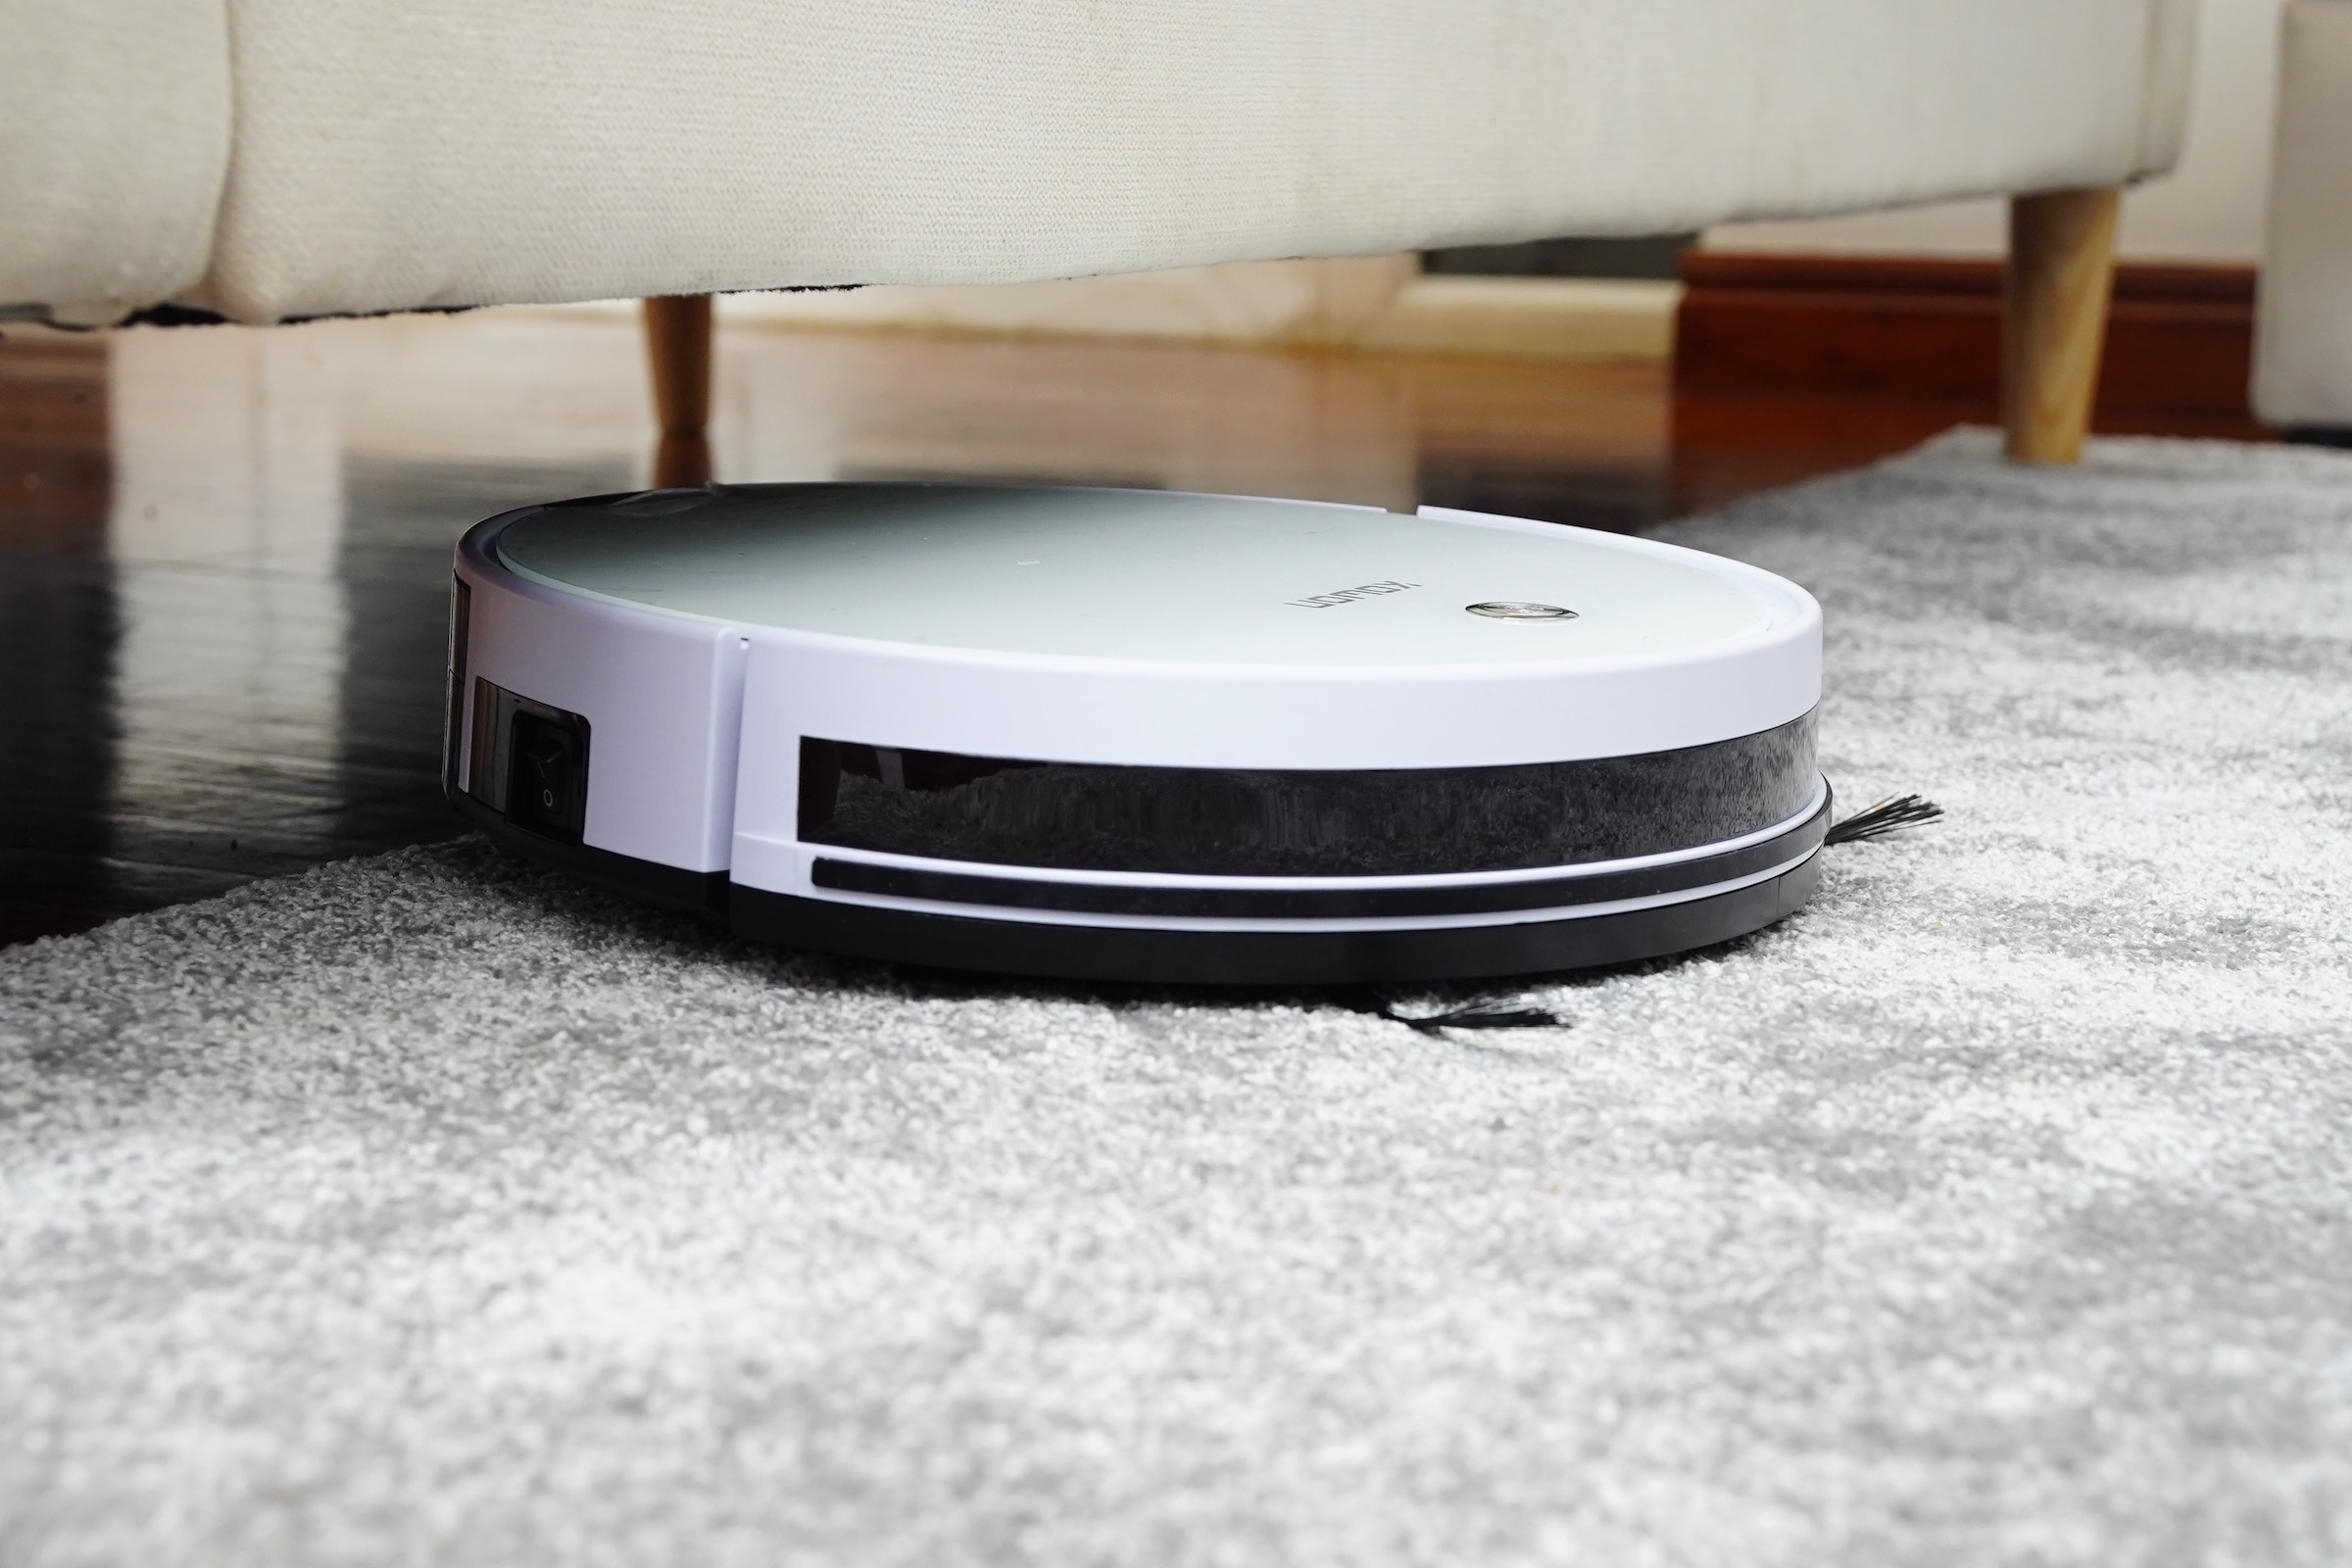 Another one of our carpet care tips is to vacuum often.